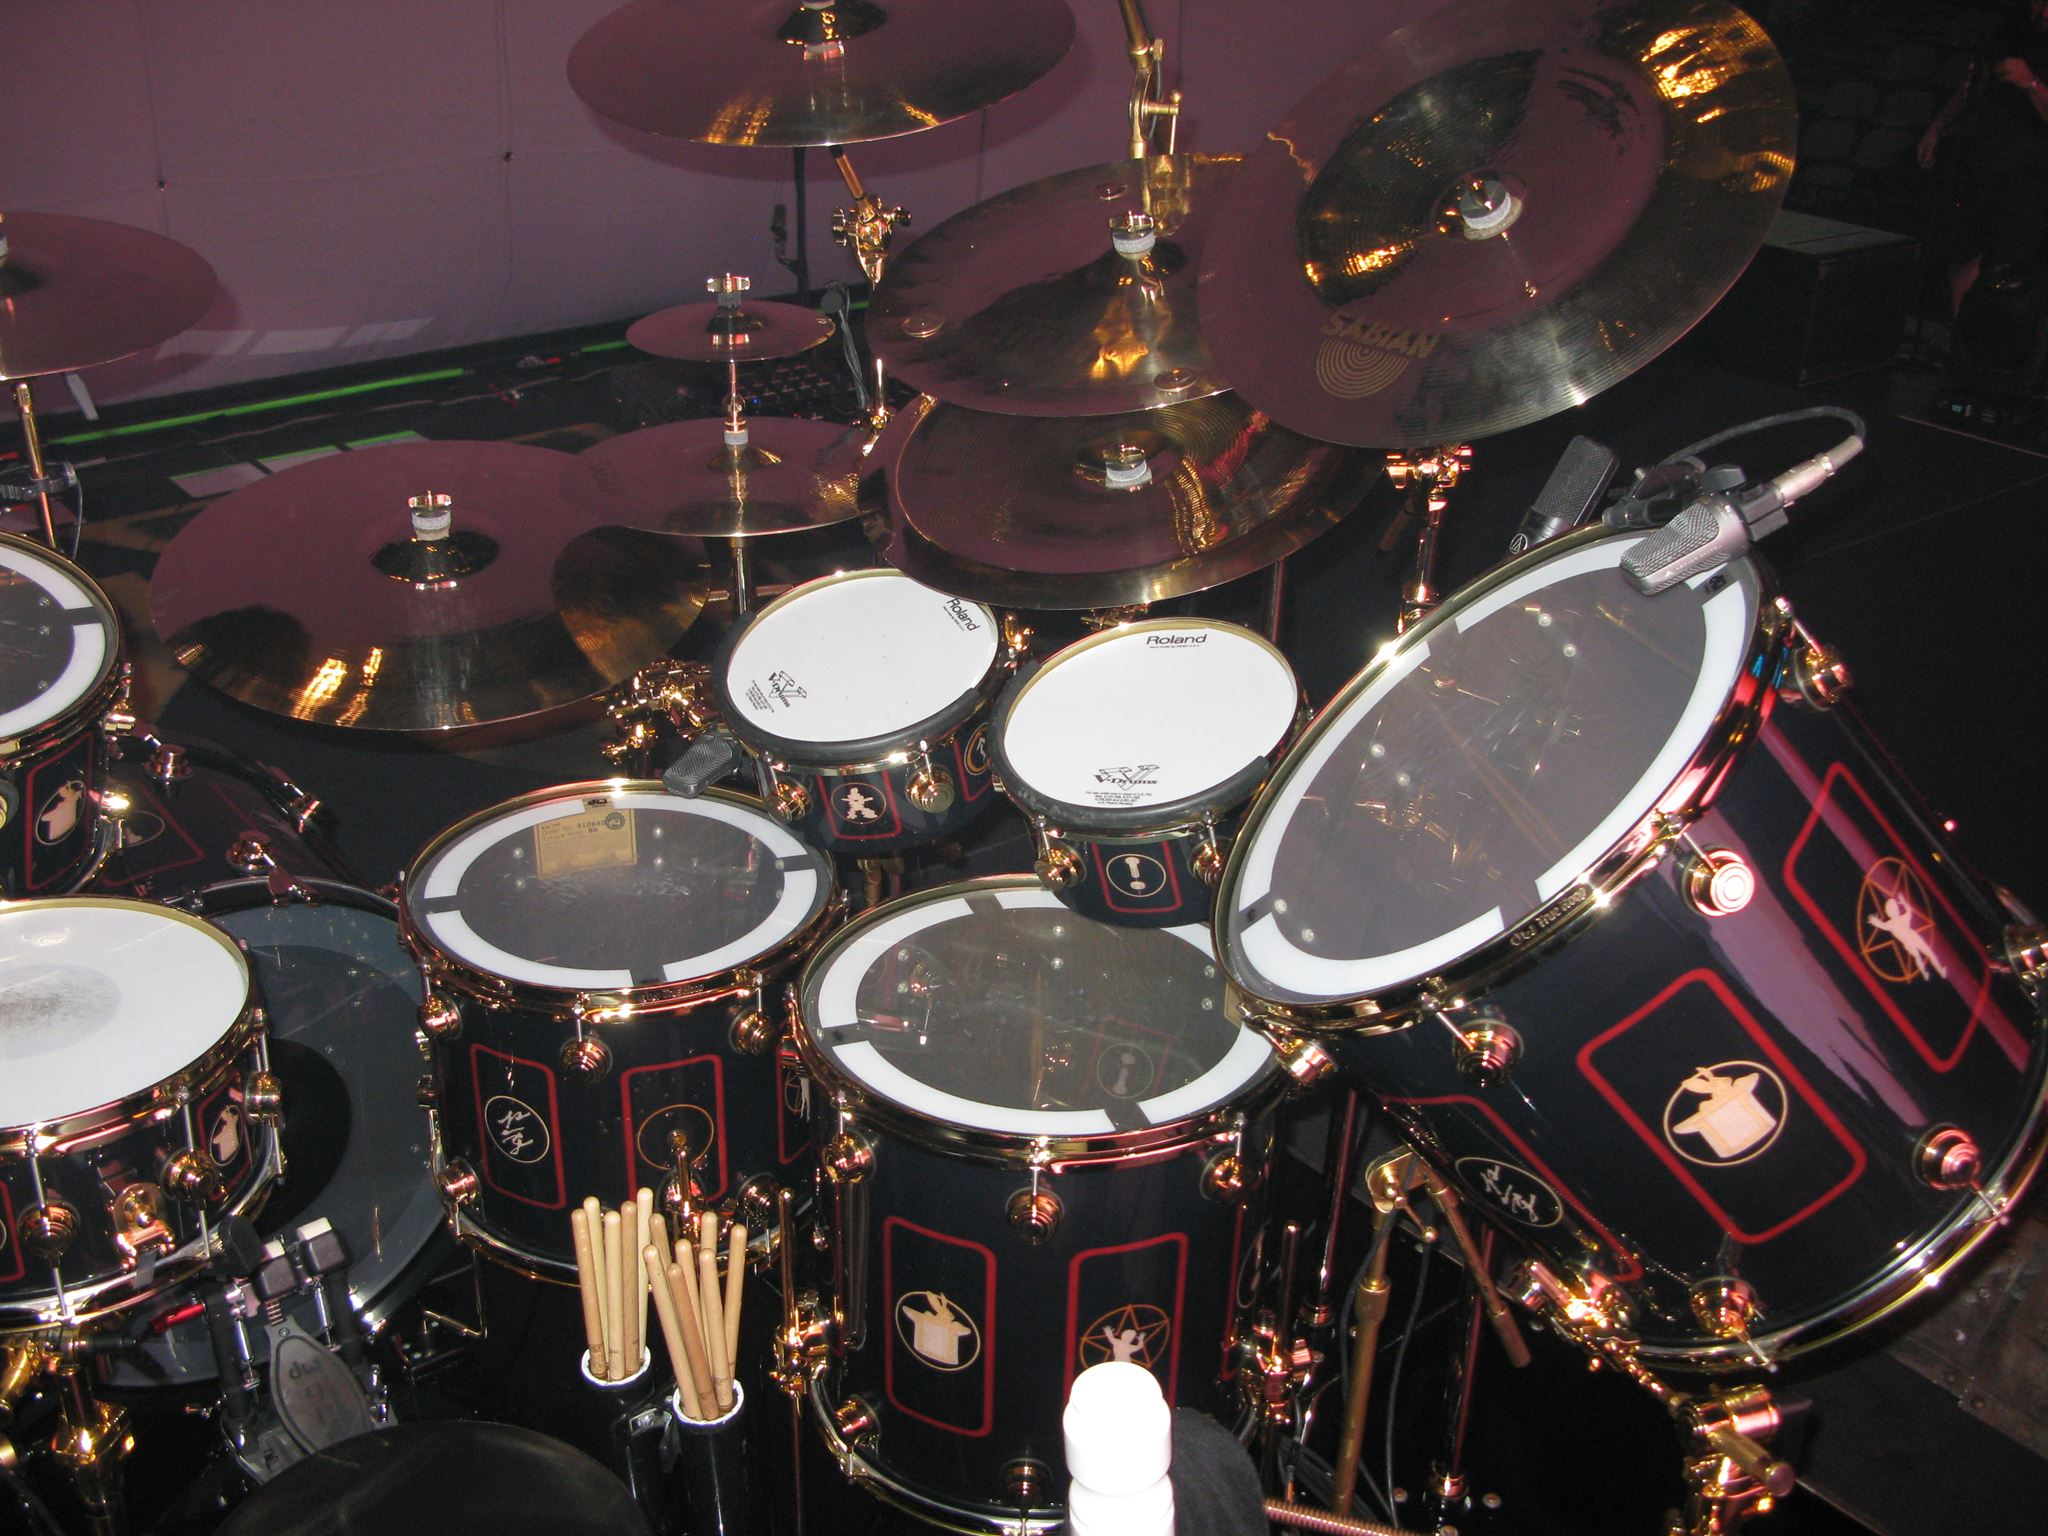 Neil Pearts R40 Drums Snare Drum Photography For Diagram Kit Courtesy Of Michael Df Lowe